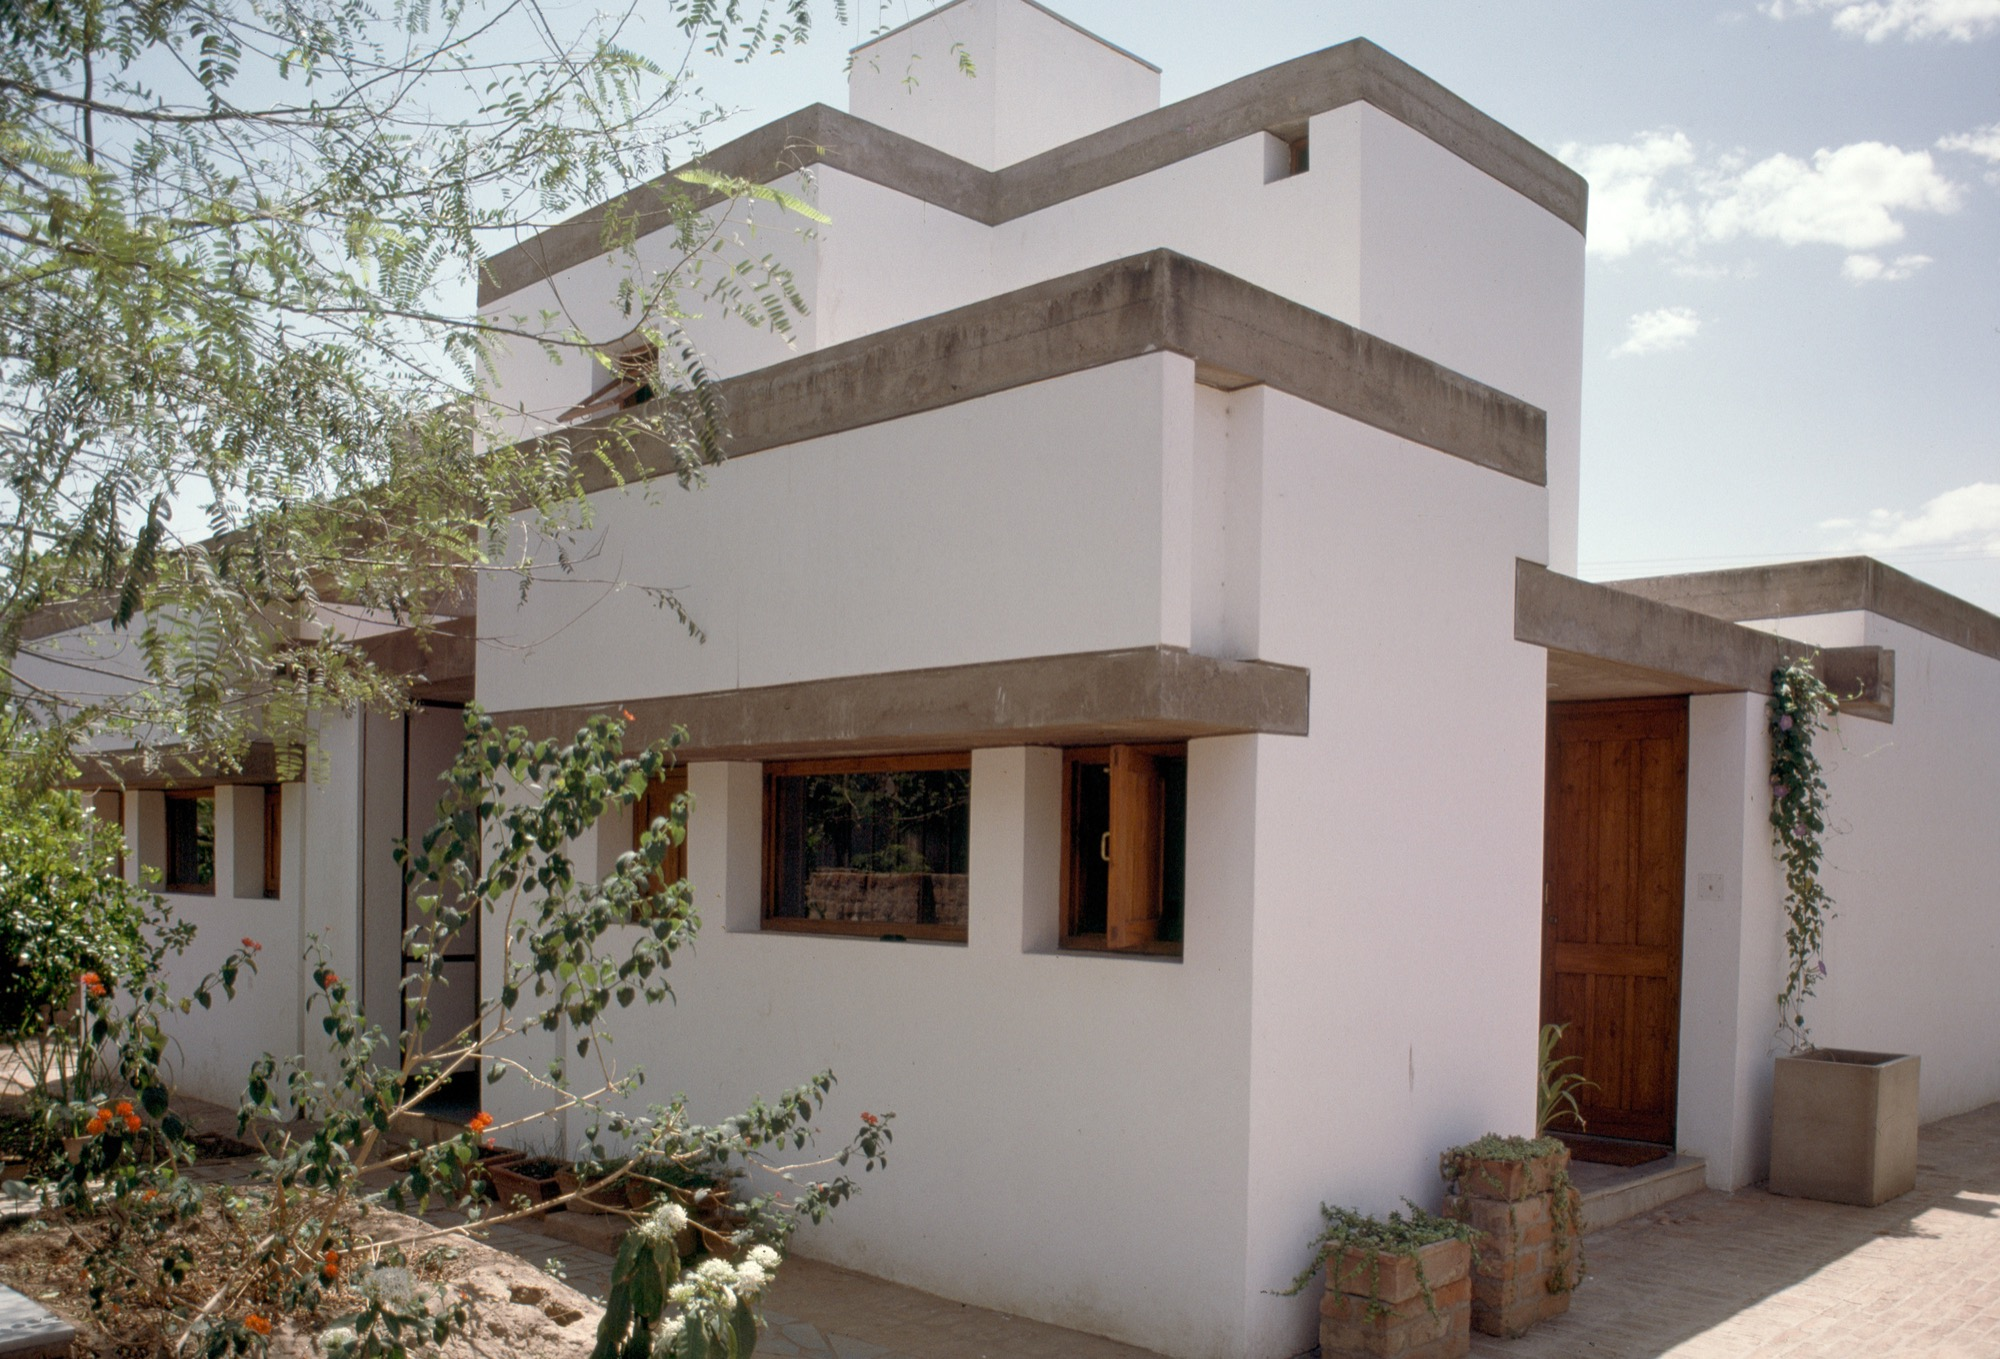 Of Light, Shade and Shelterdness in Design of Private Residences - P. Venugopal 3